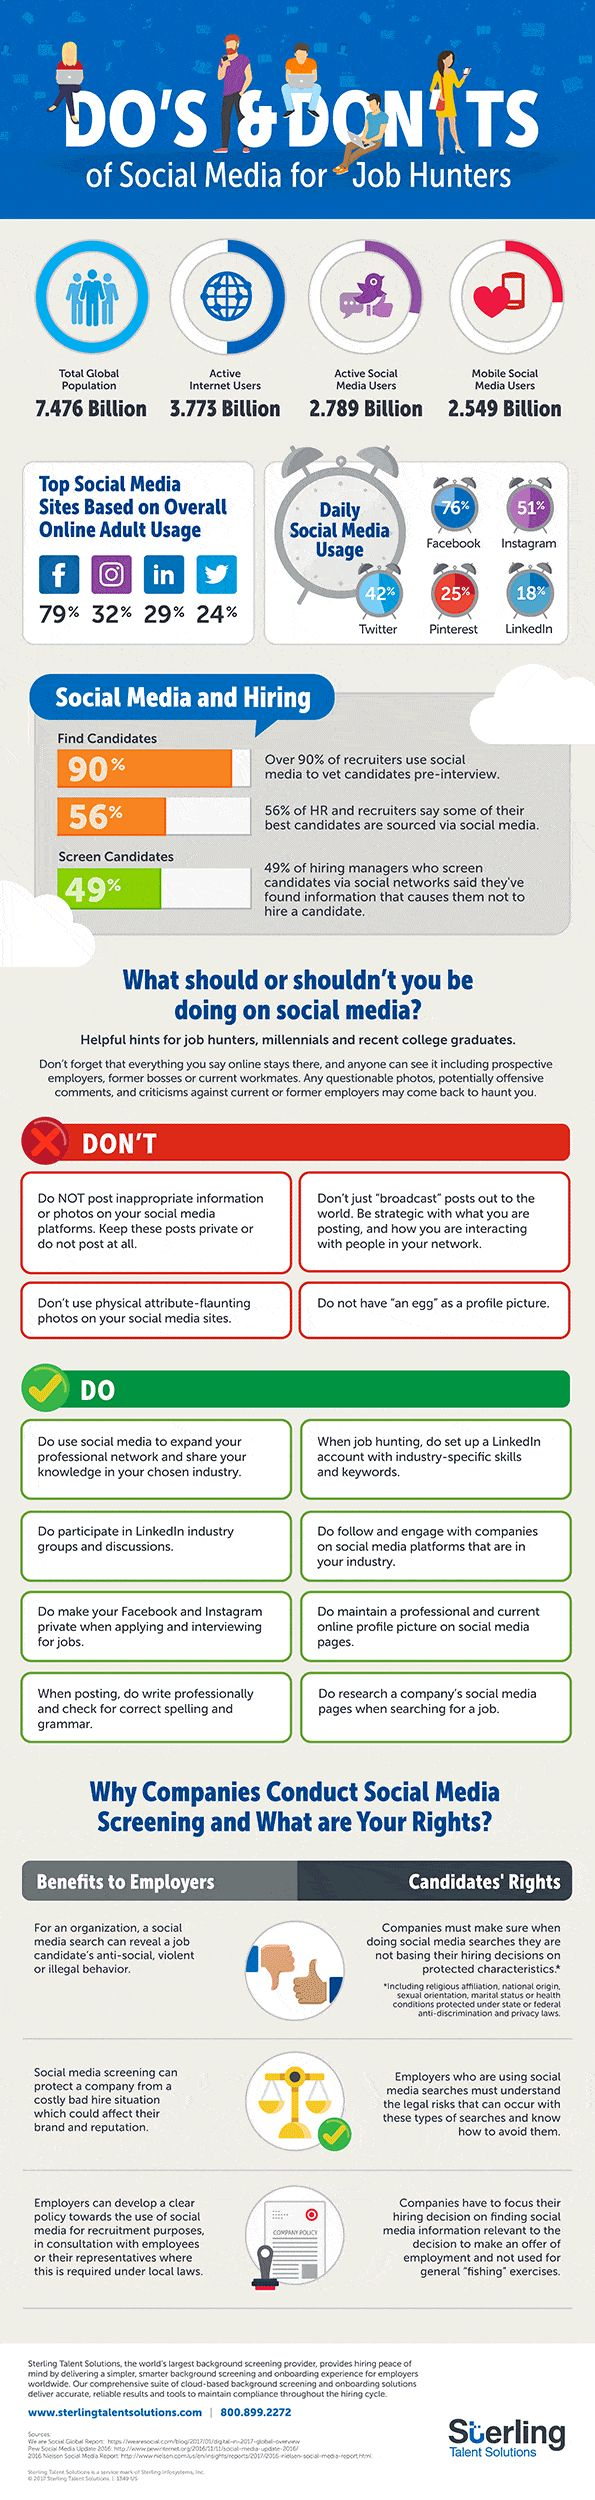 Dos and Don'ts of Social Media for Job Hunters - #infographic